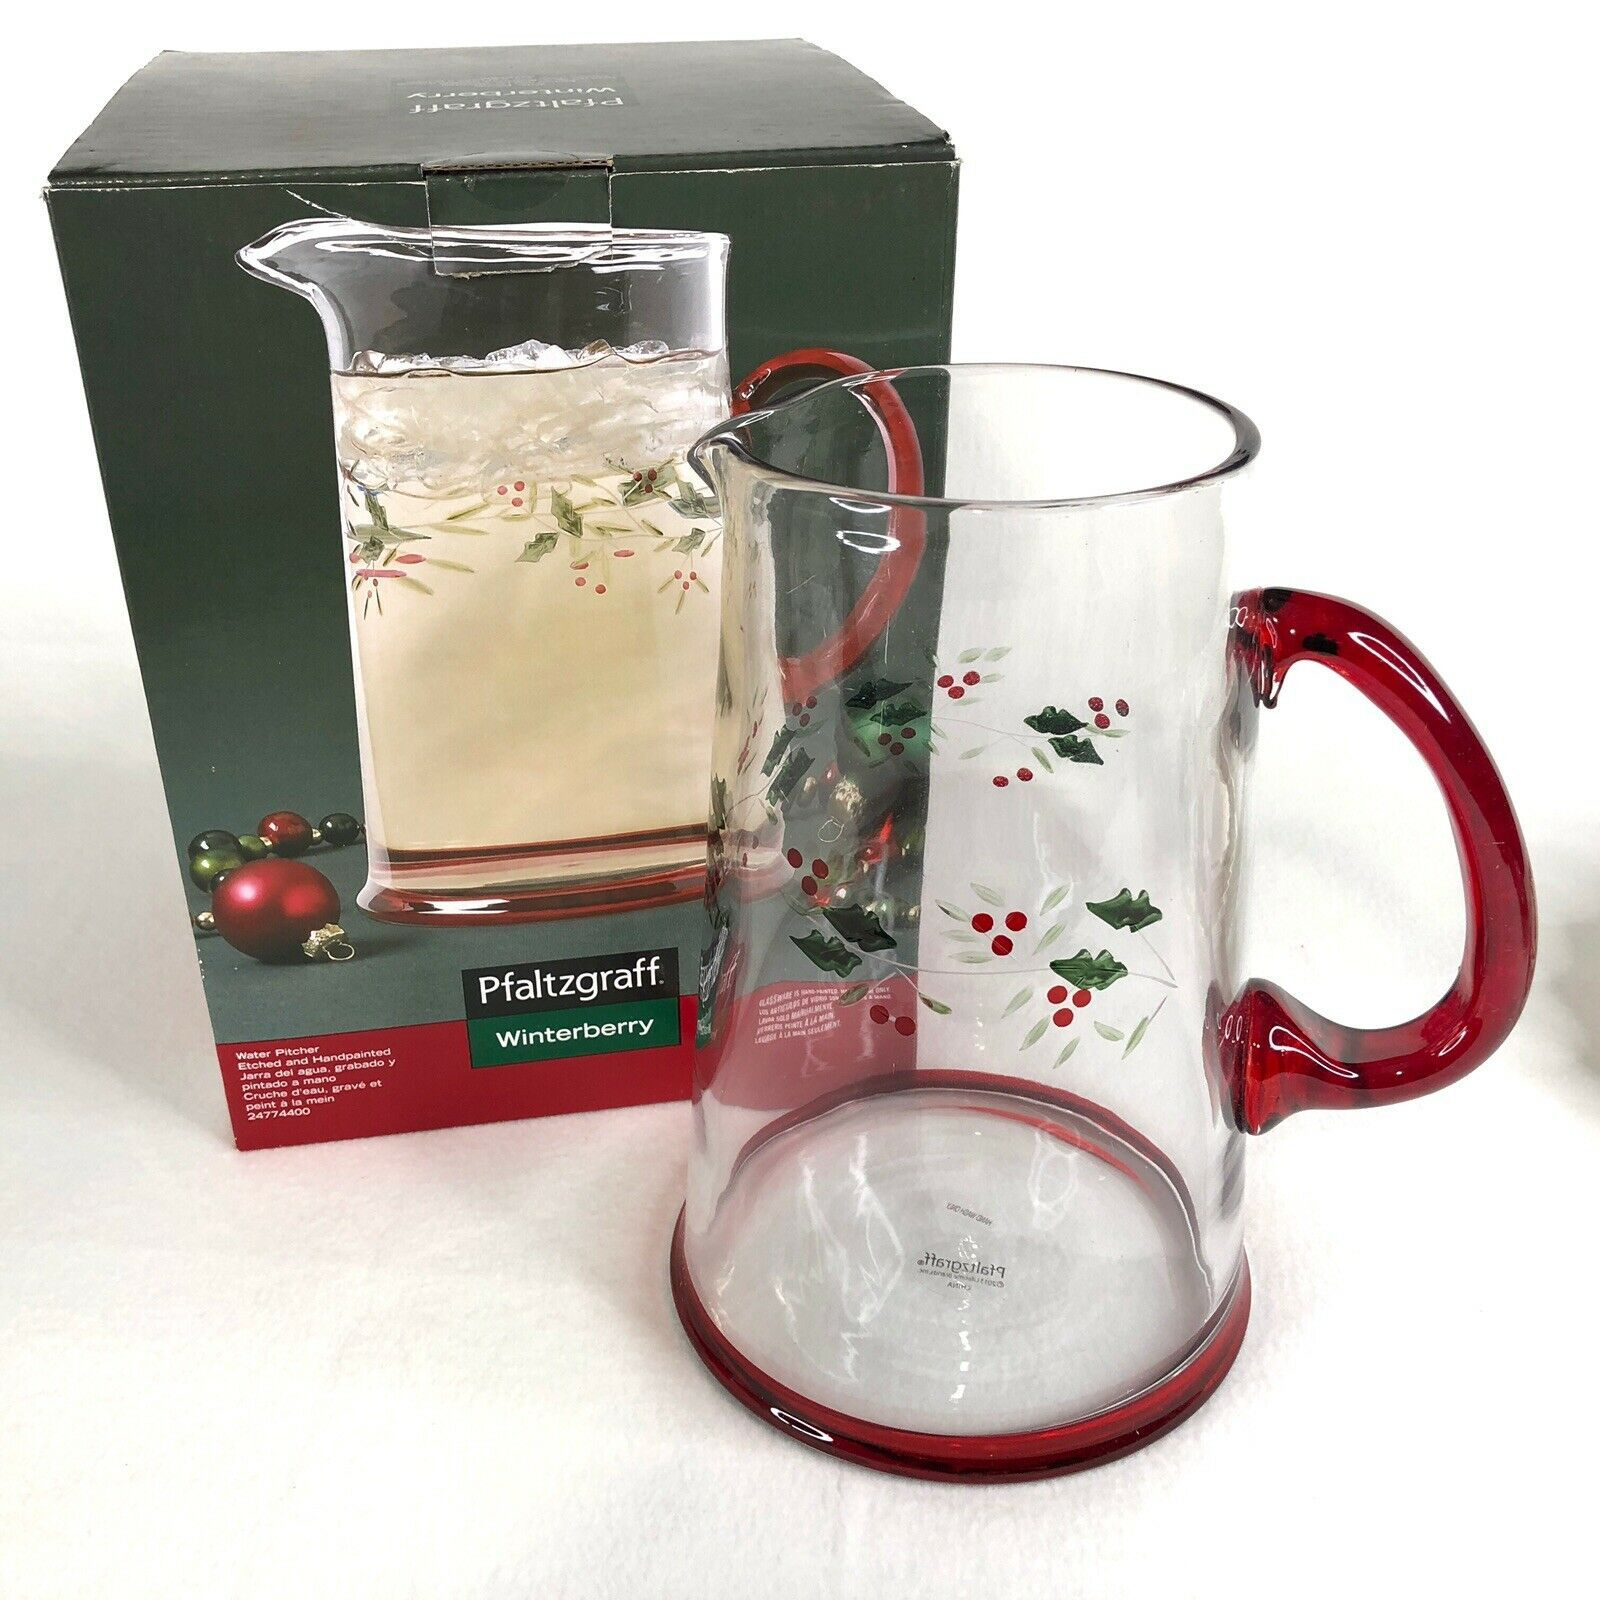 New Pfaltzgraff Winterberry Glass Pitcher Etched Hand Painted 2.5 QT Christmas - $24.26